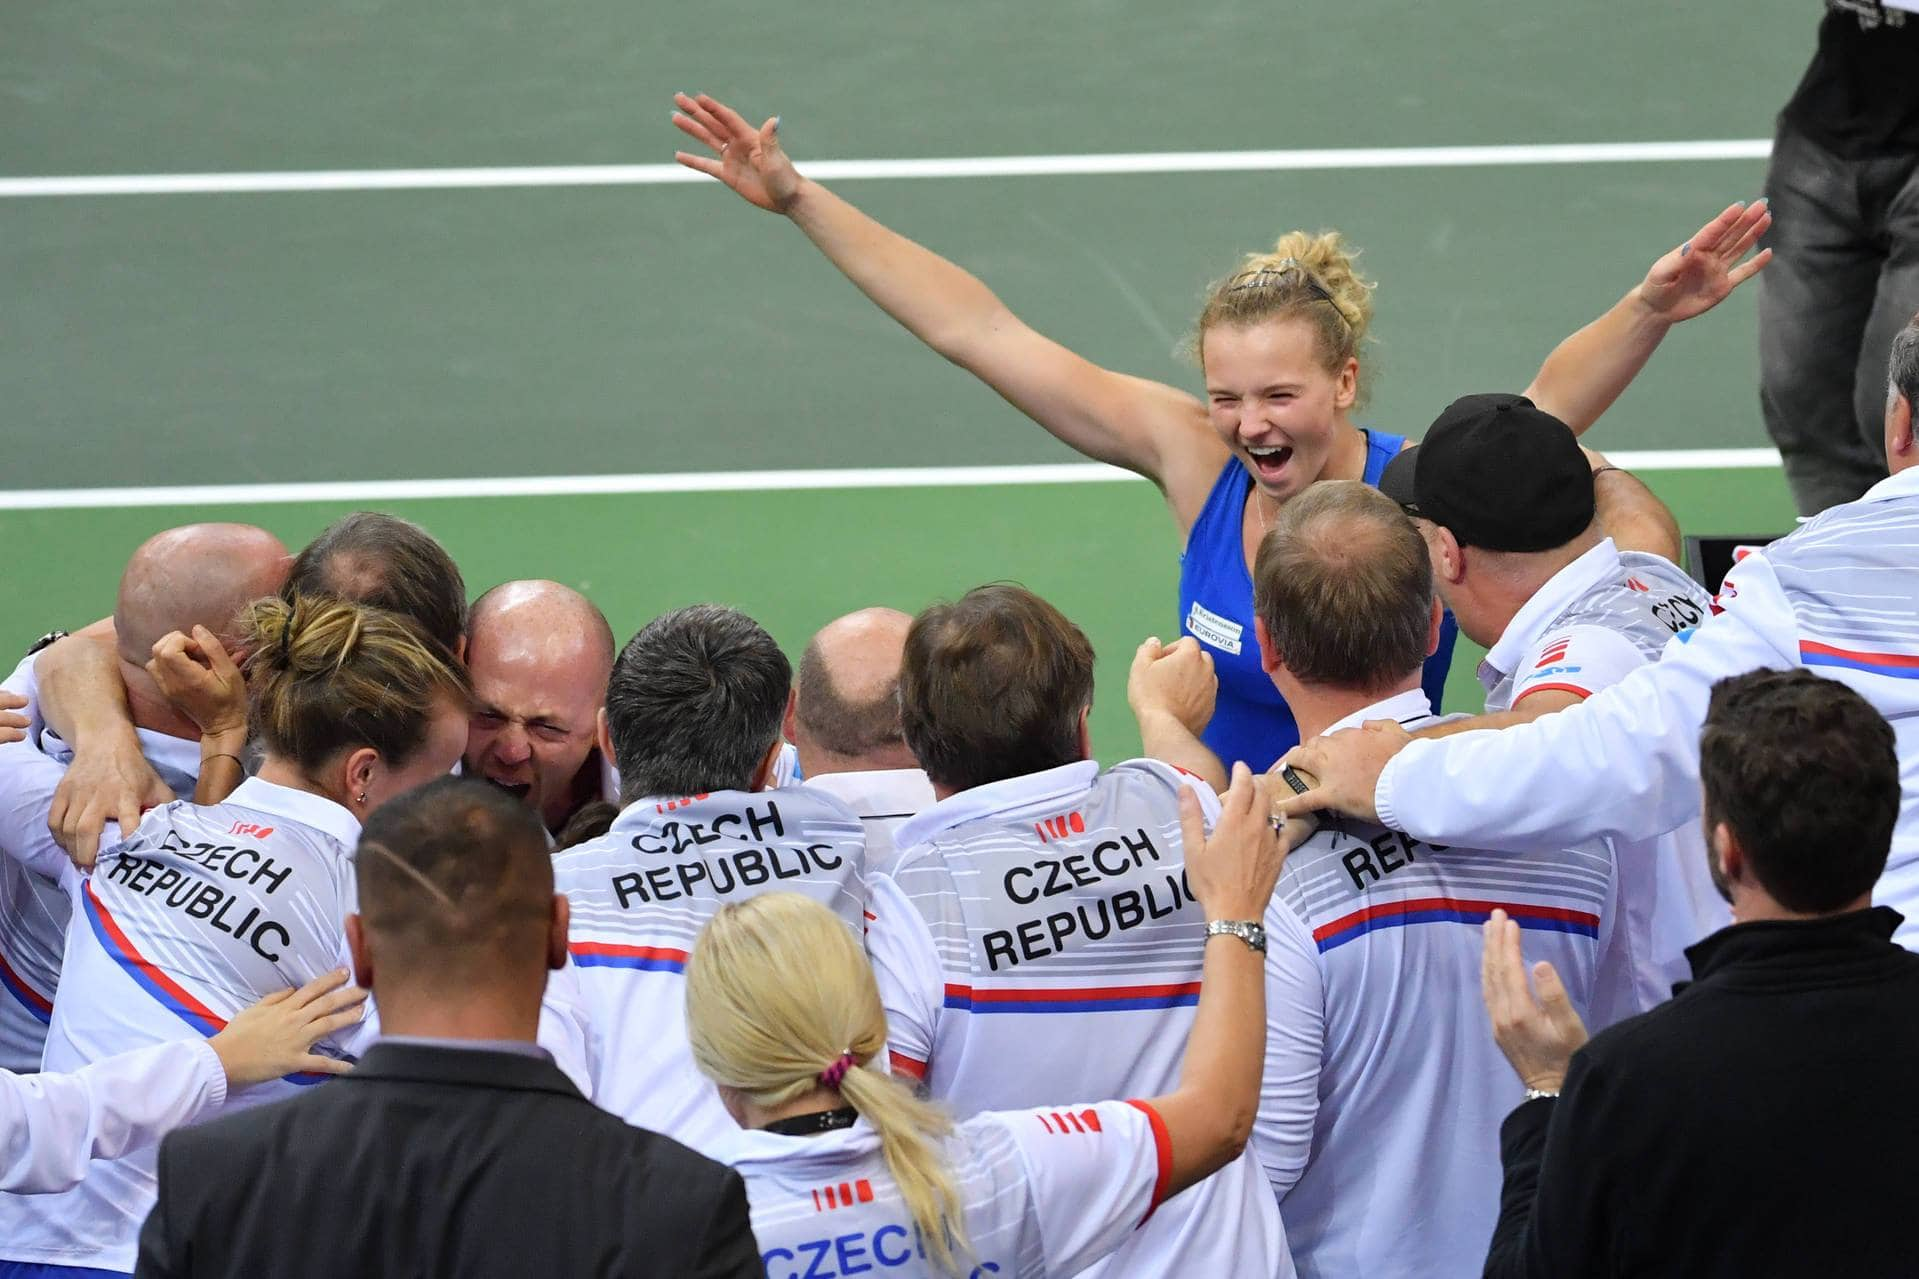 Czech Republic Tops USA to Win 2018 Fed Cup